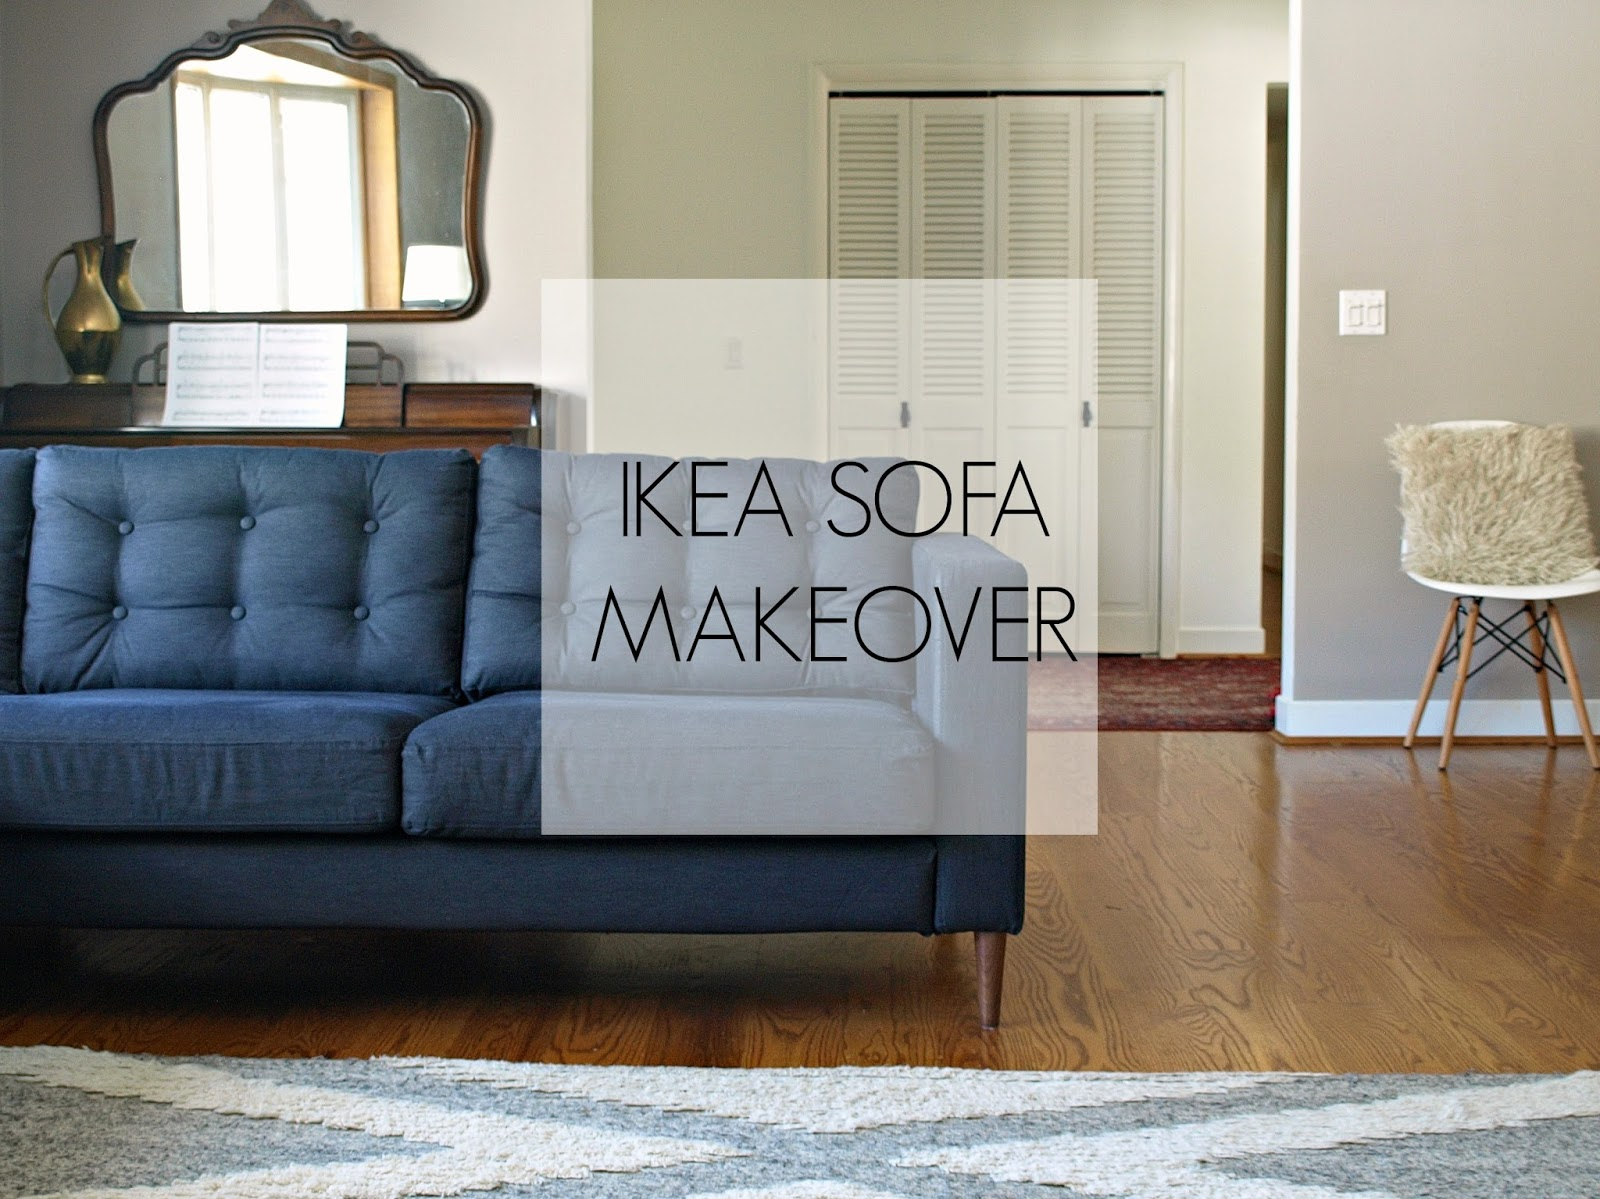 This Little Miggy Stayed Home Ikea Sofa Makeover